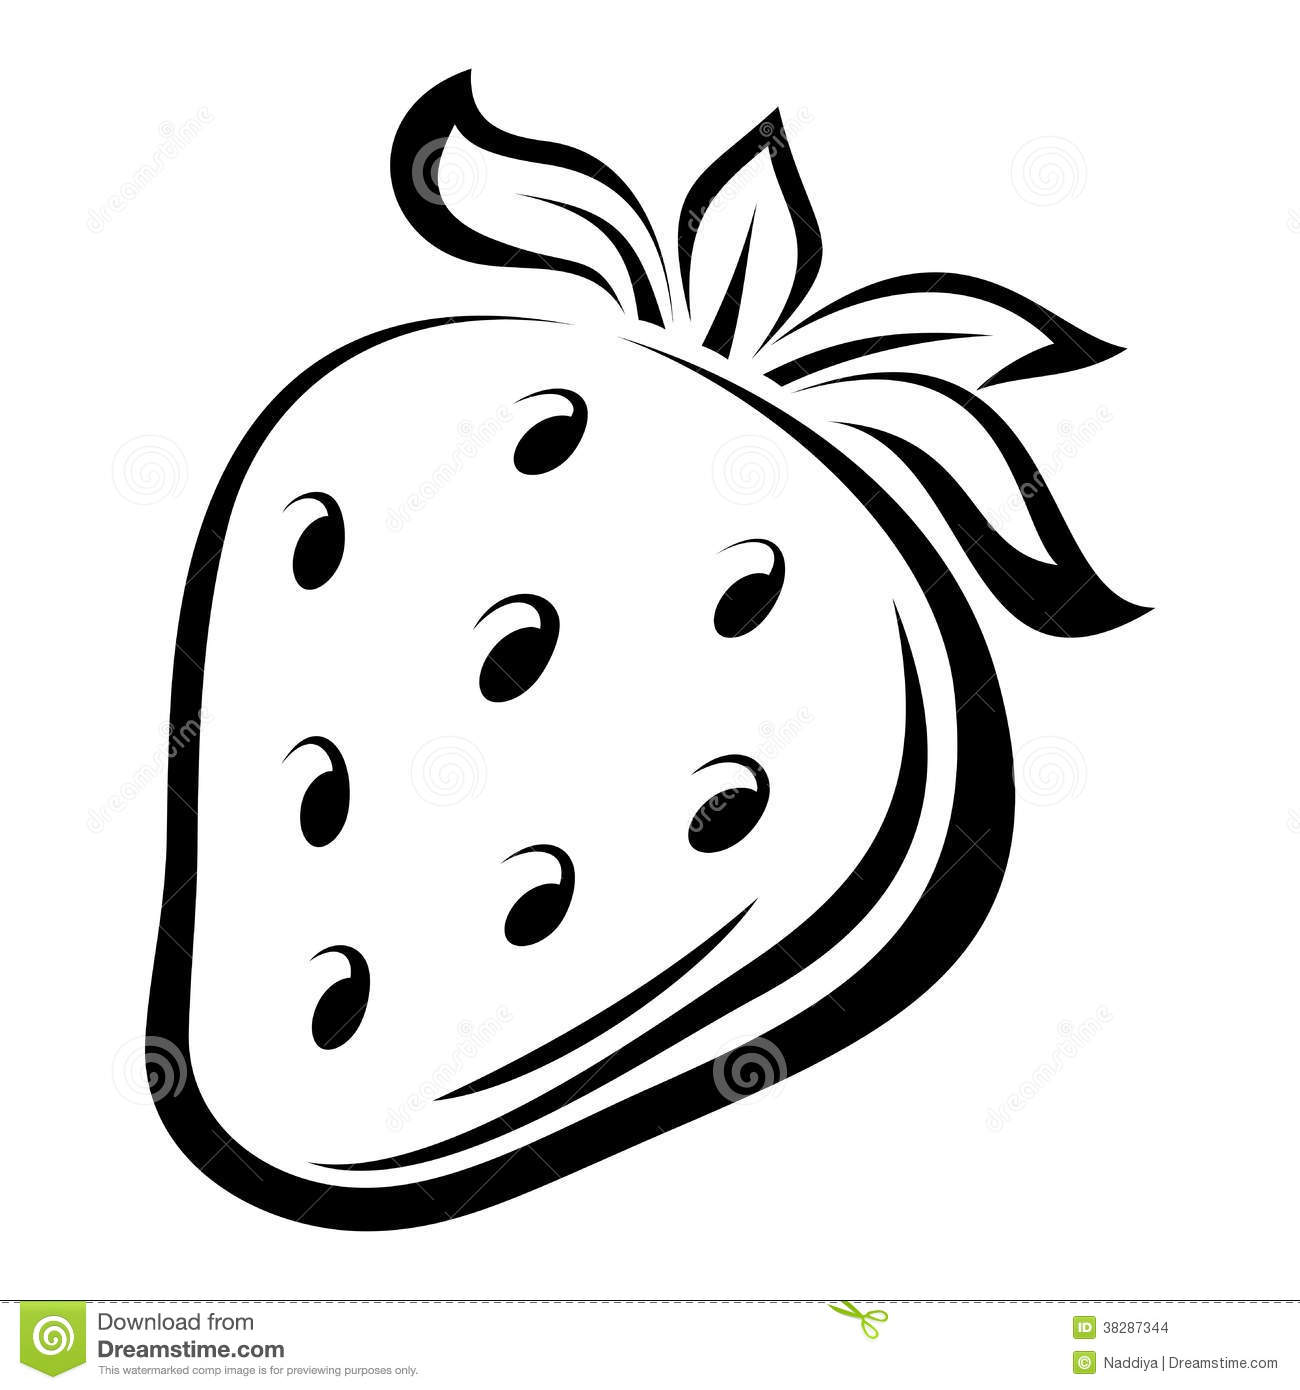 Contour Drawing Of Strawberry. Stock Vector - Illustration ...